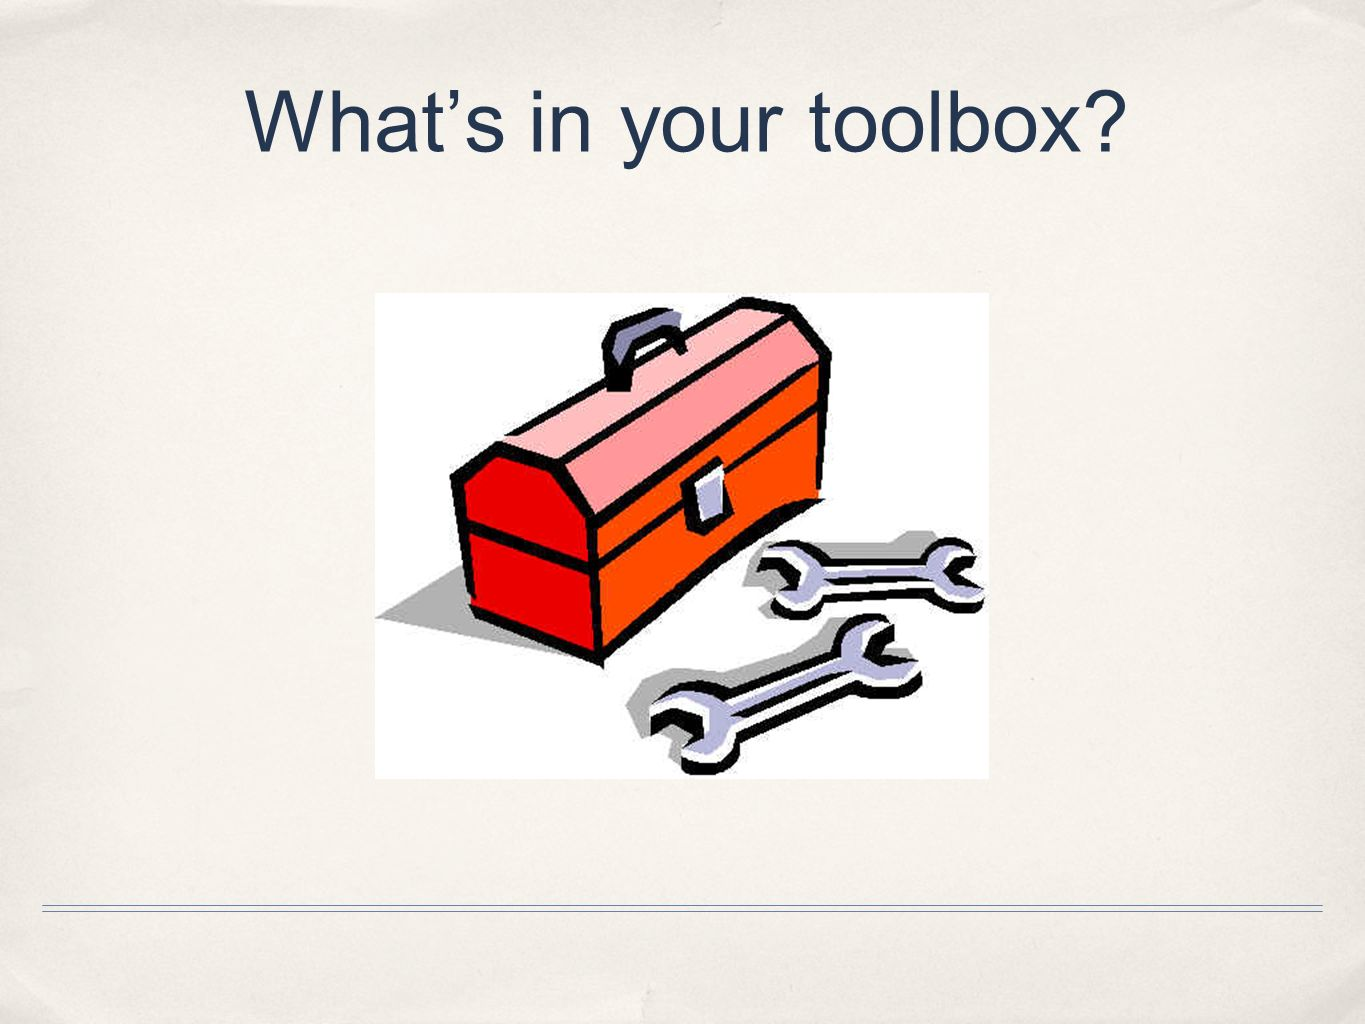 Whats in your toolbox